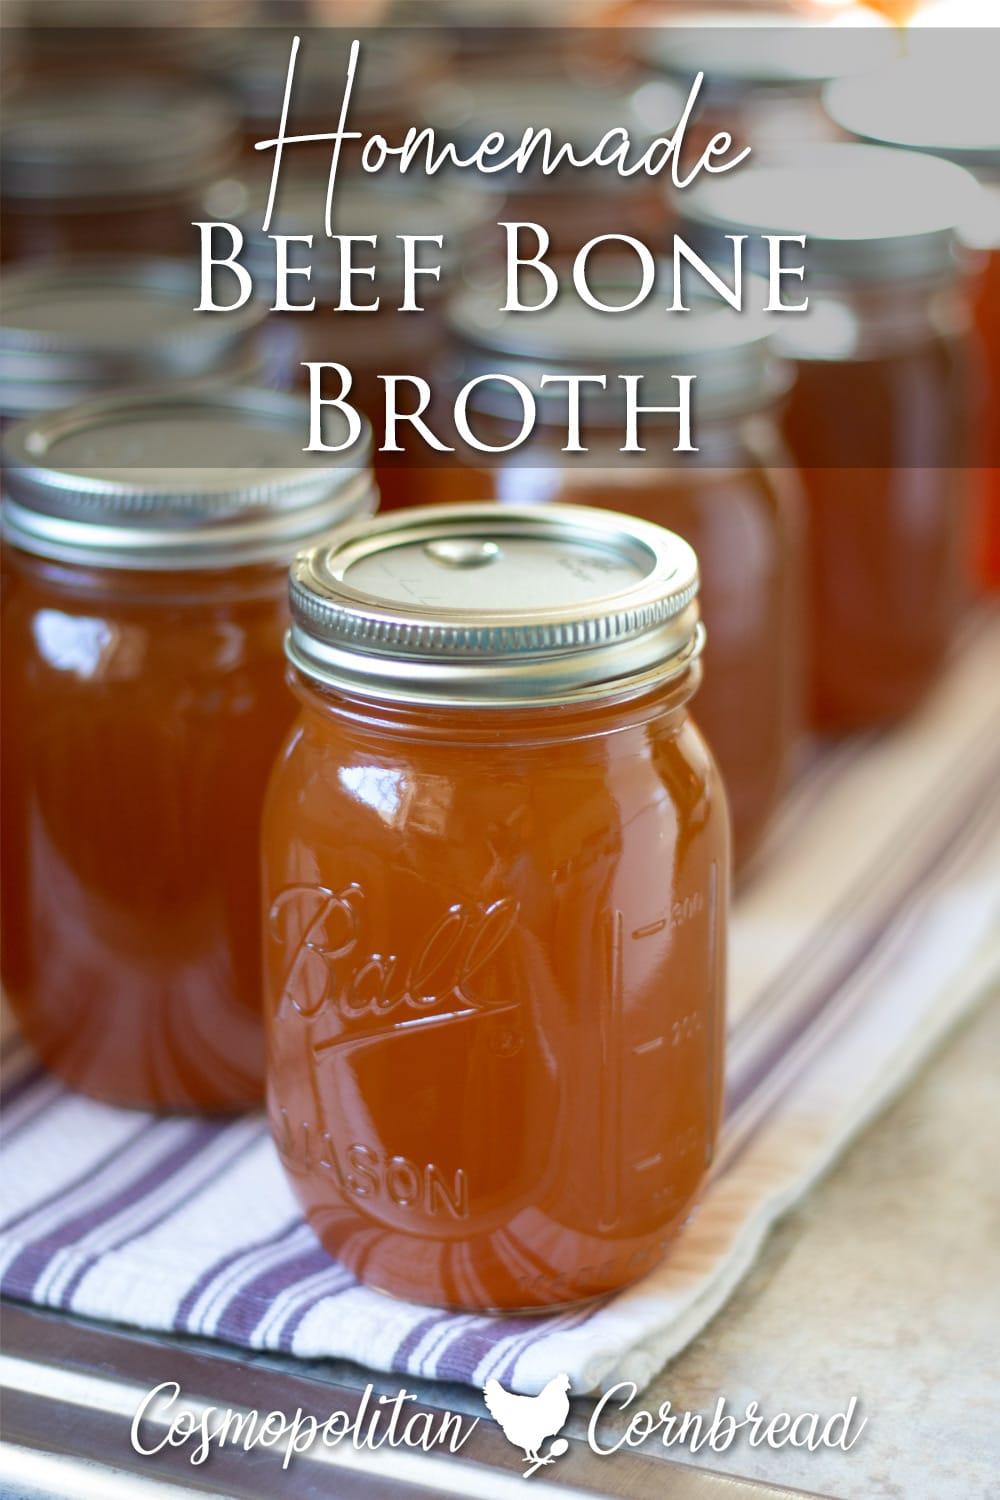 Making your own homemade Beef Bone Broth is an amazing way to add healthy, and delicious flavor to your recipes.